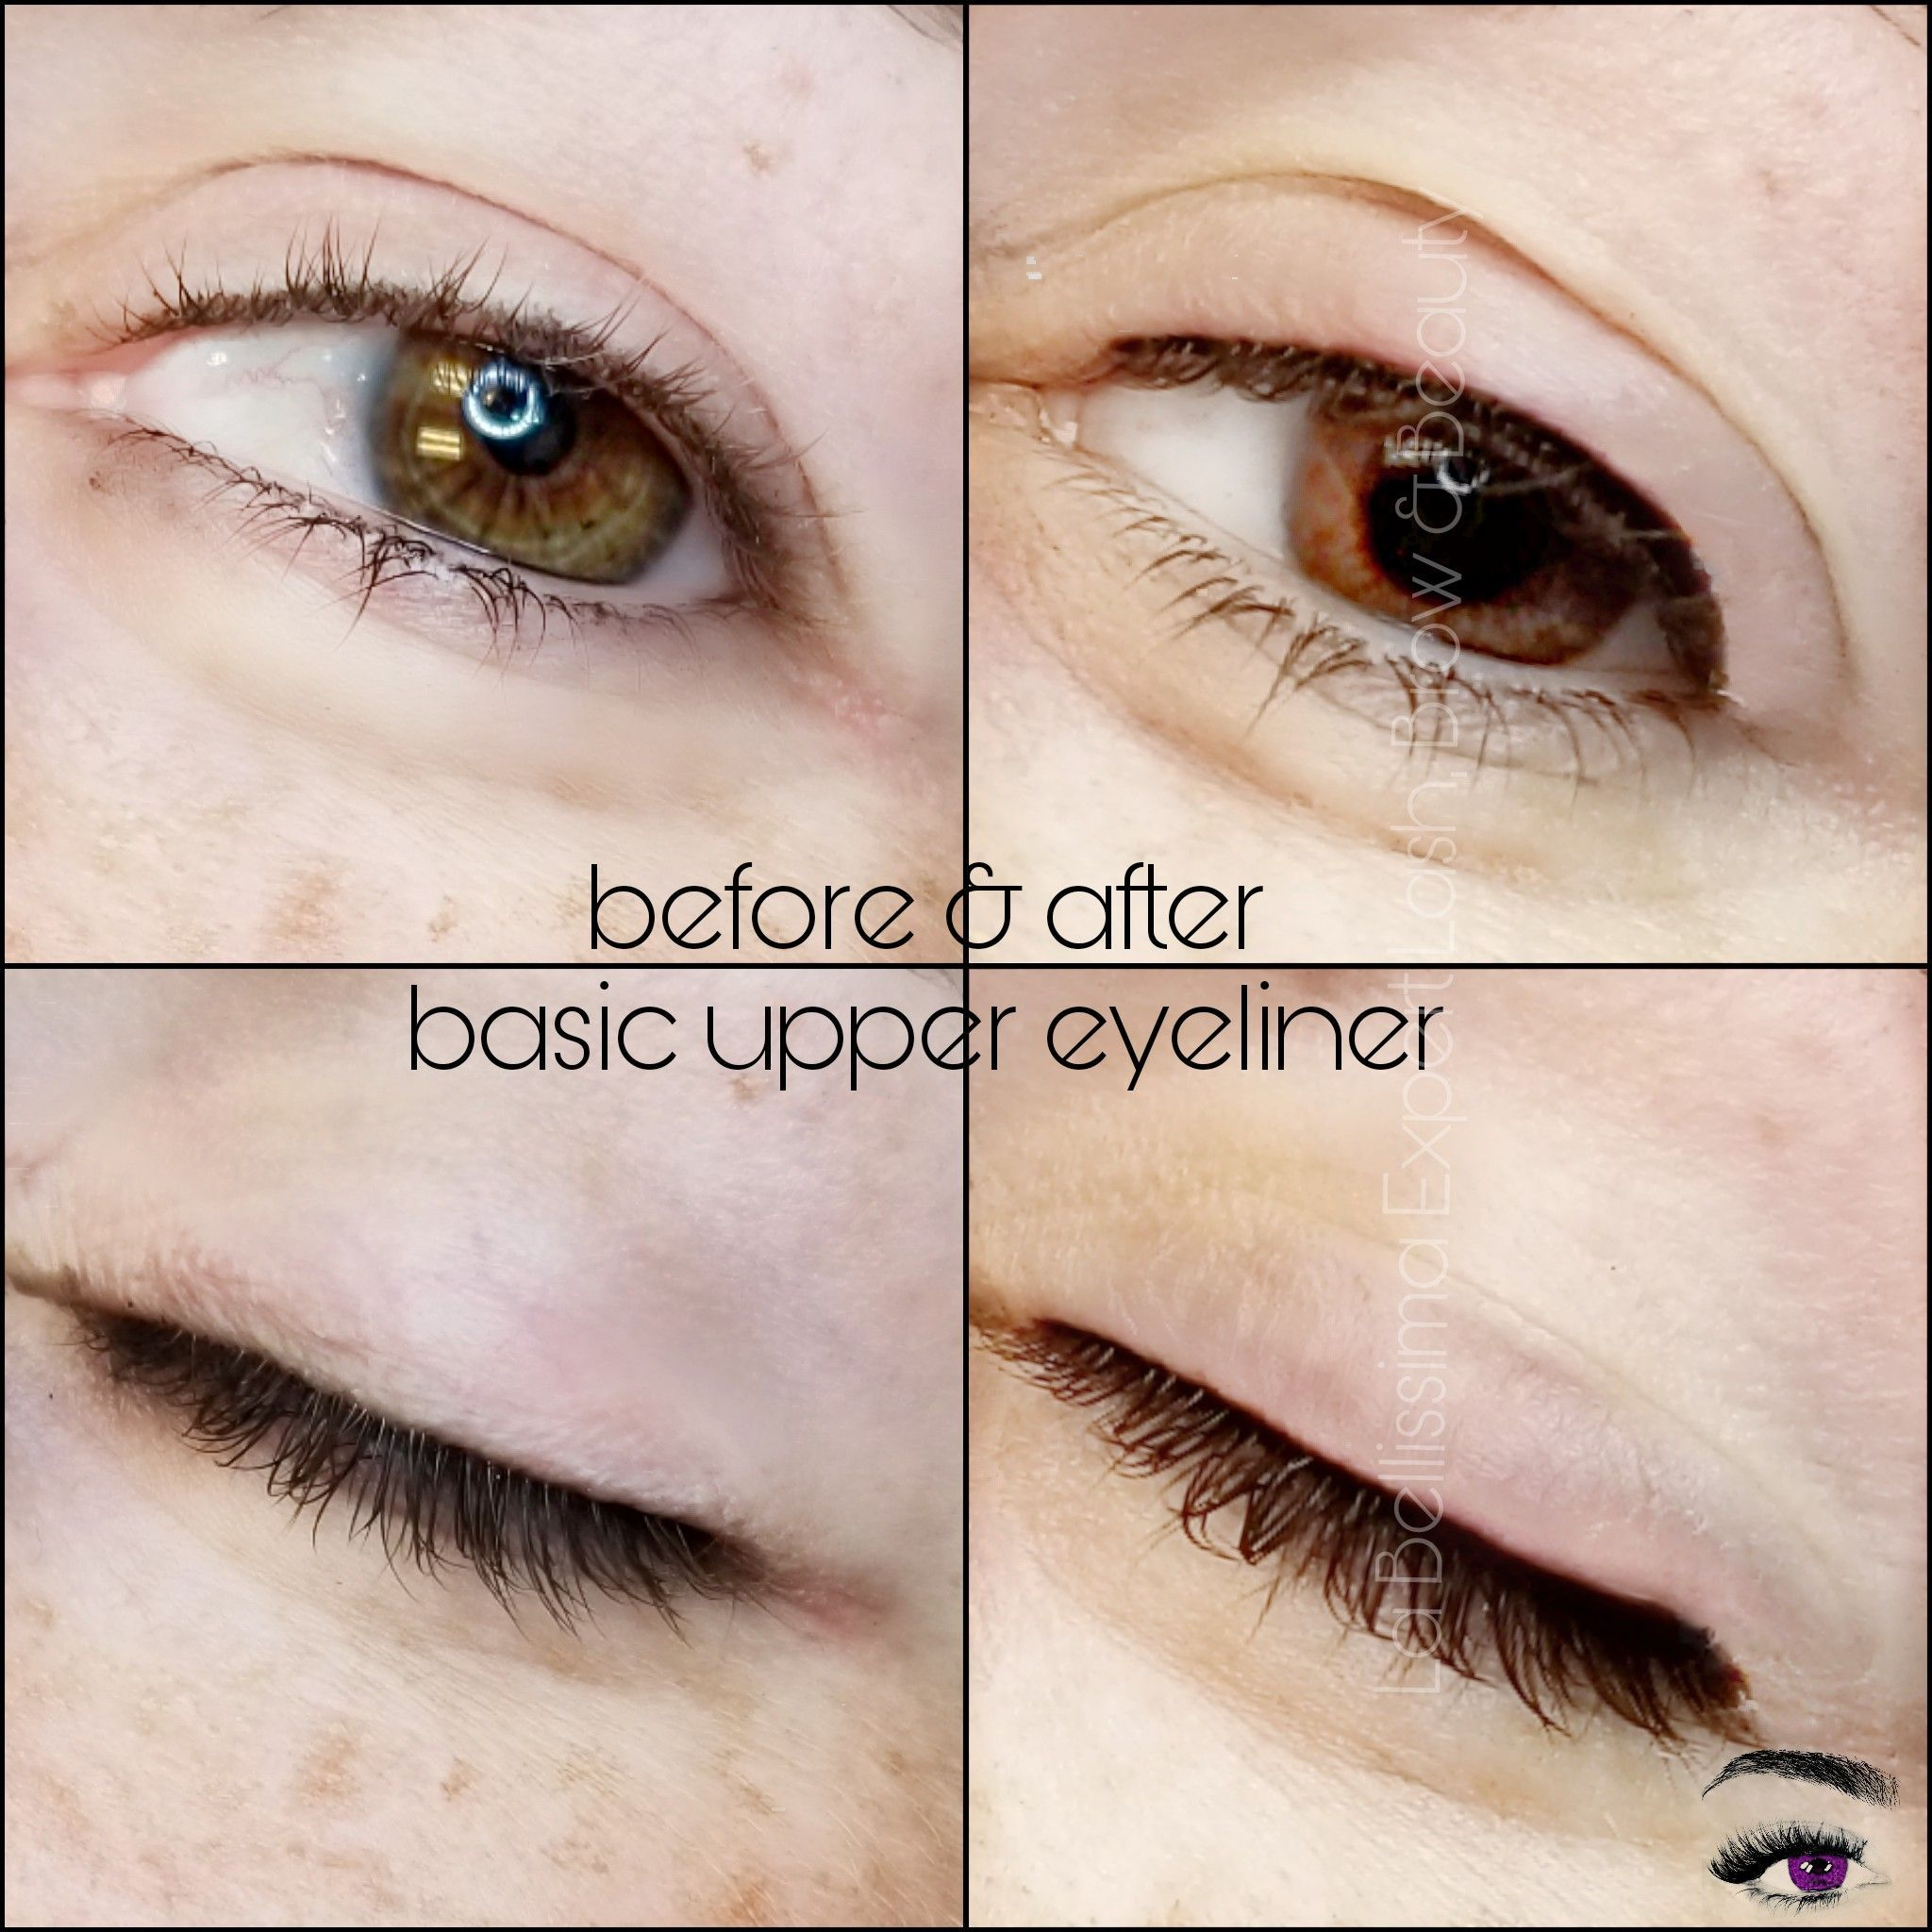 Basic Upper Eyeliner Before After No Flick Or Tail Because When In An Upright Position This Client S Eyelids Permanent Eyeliner Permanent Makeup Eyeliner